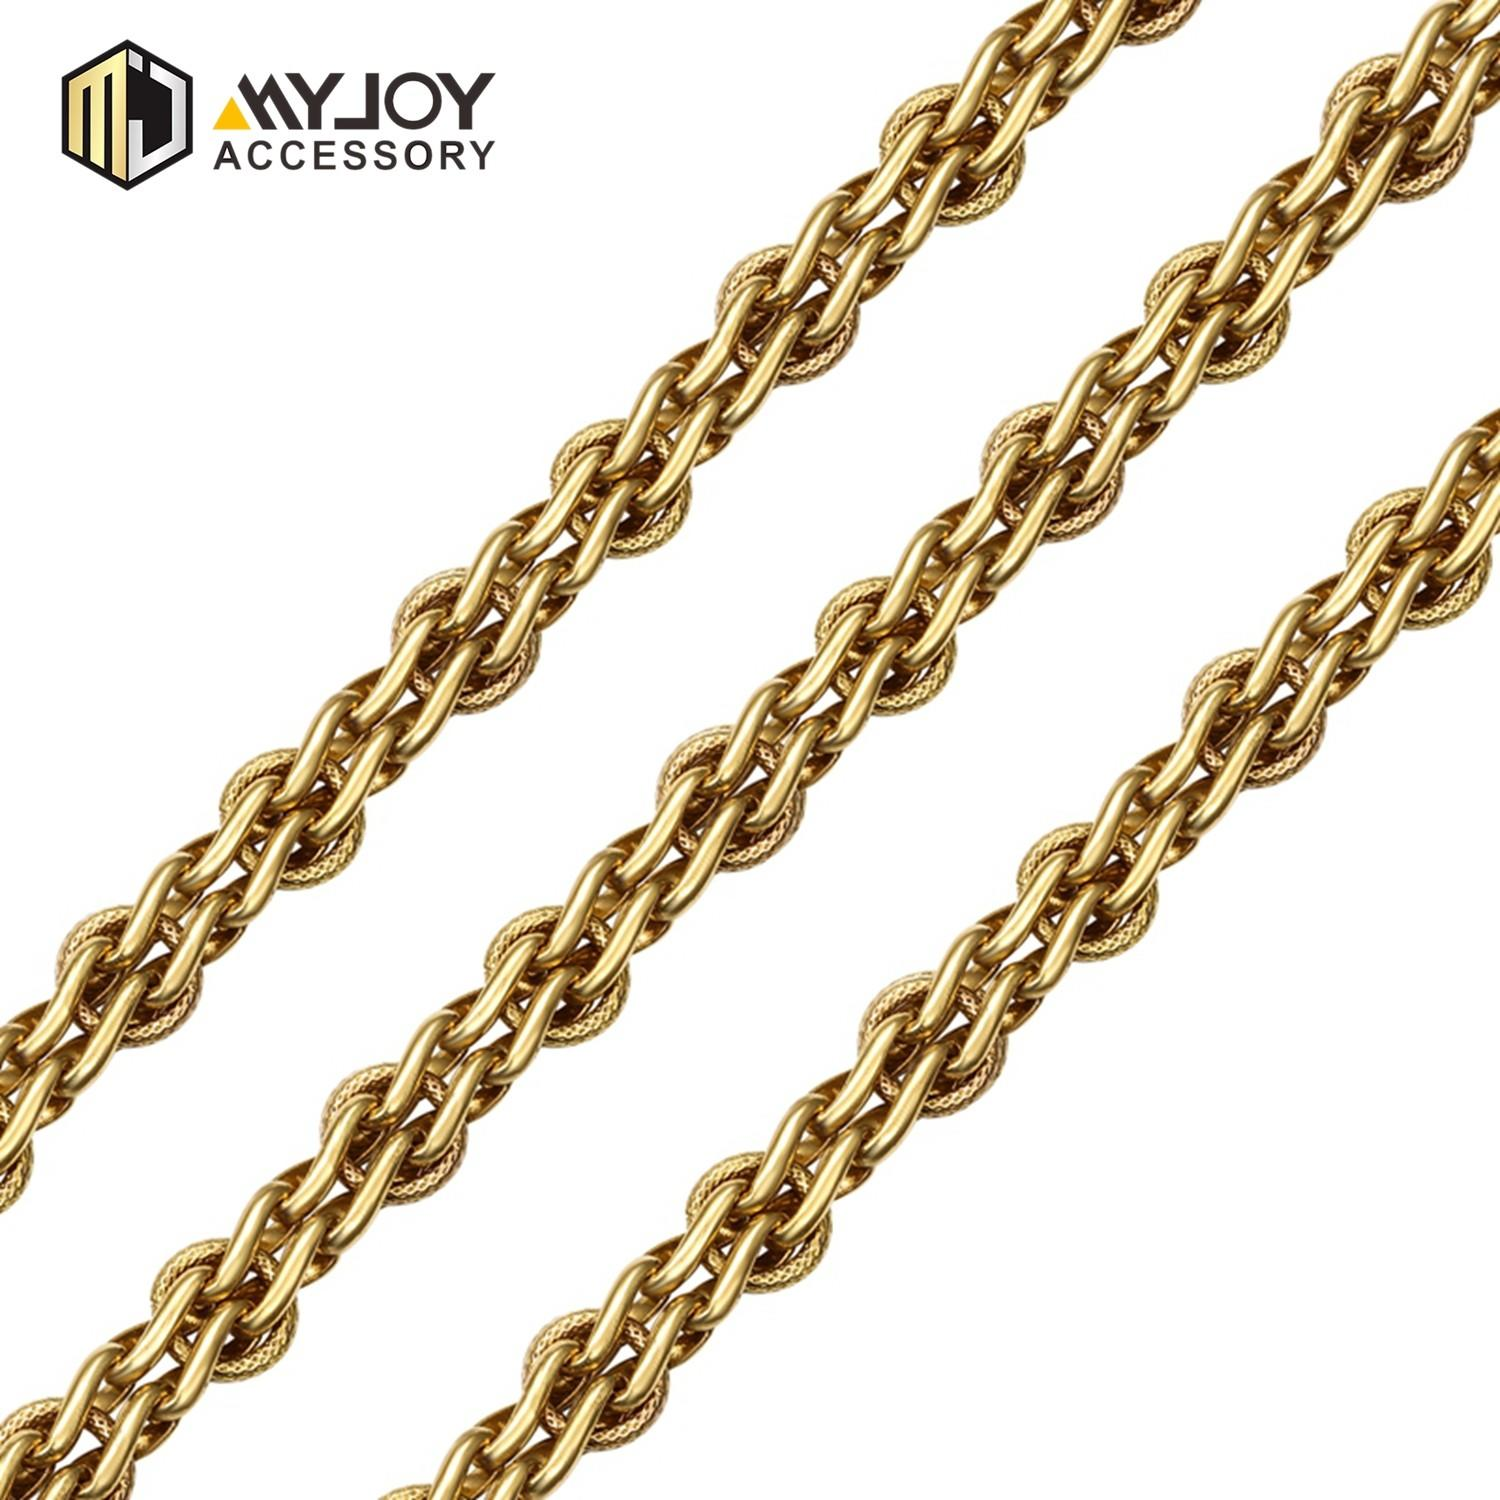 MYJOY zinc chain strap company for bags